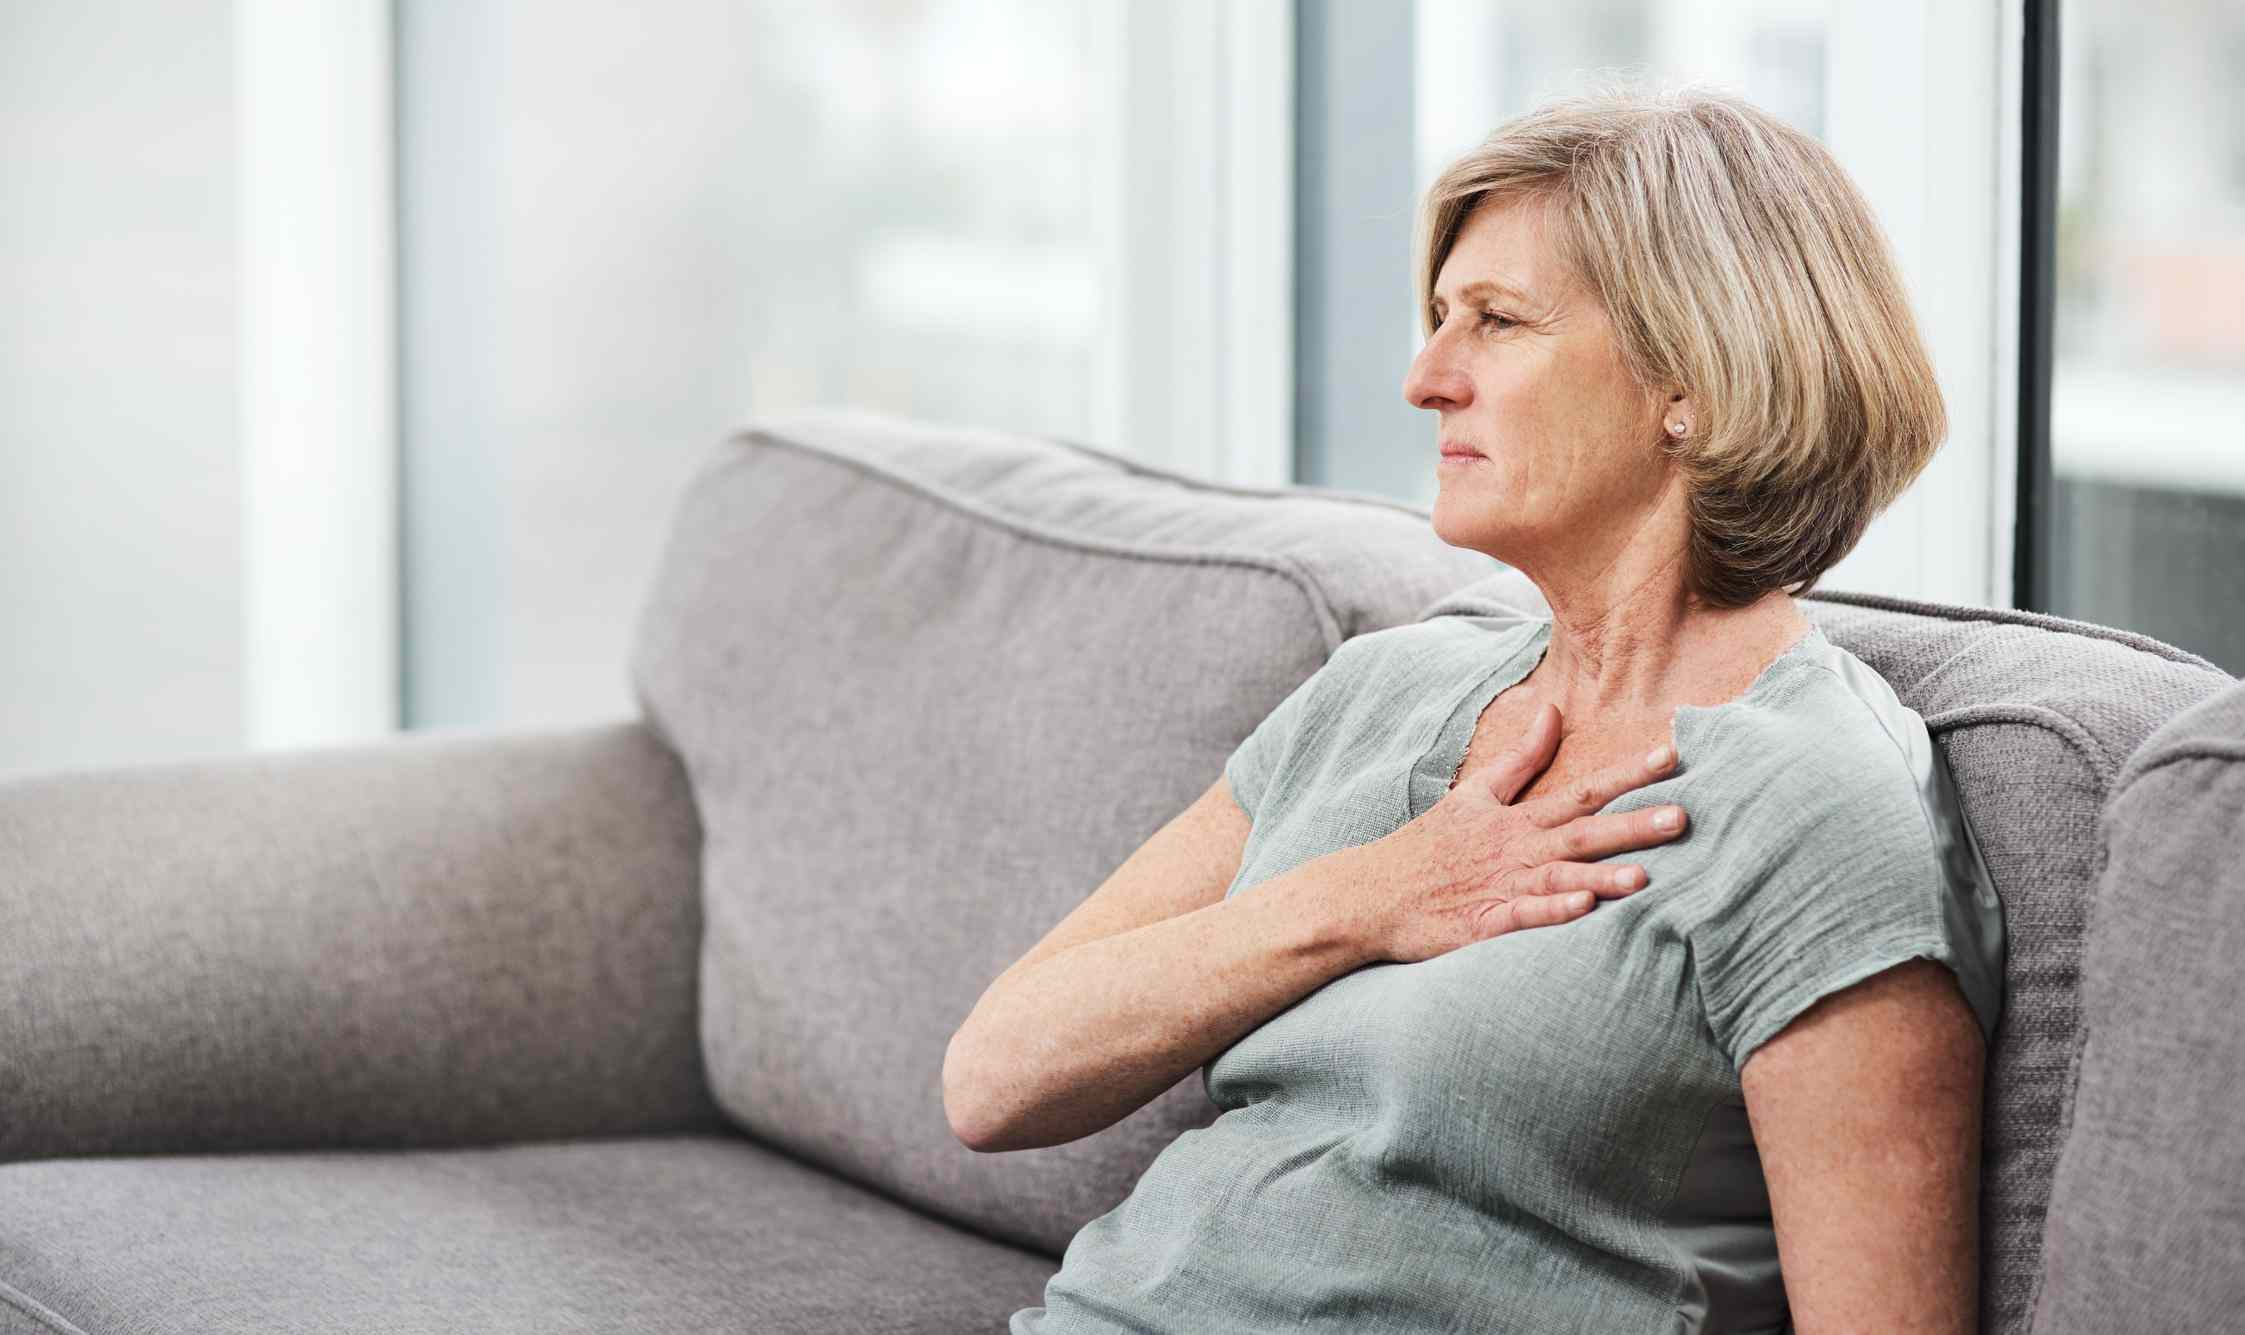 a woman who is having trouble breathing